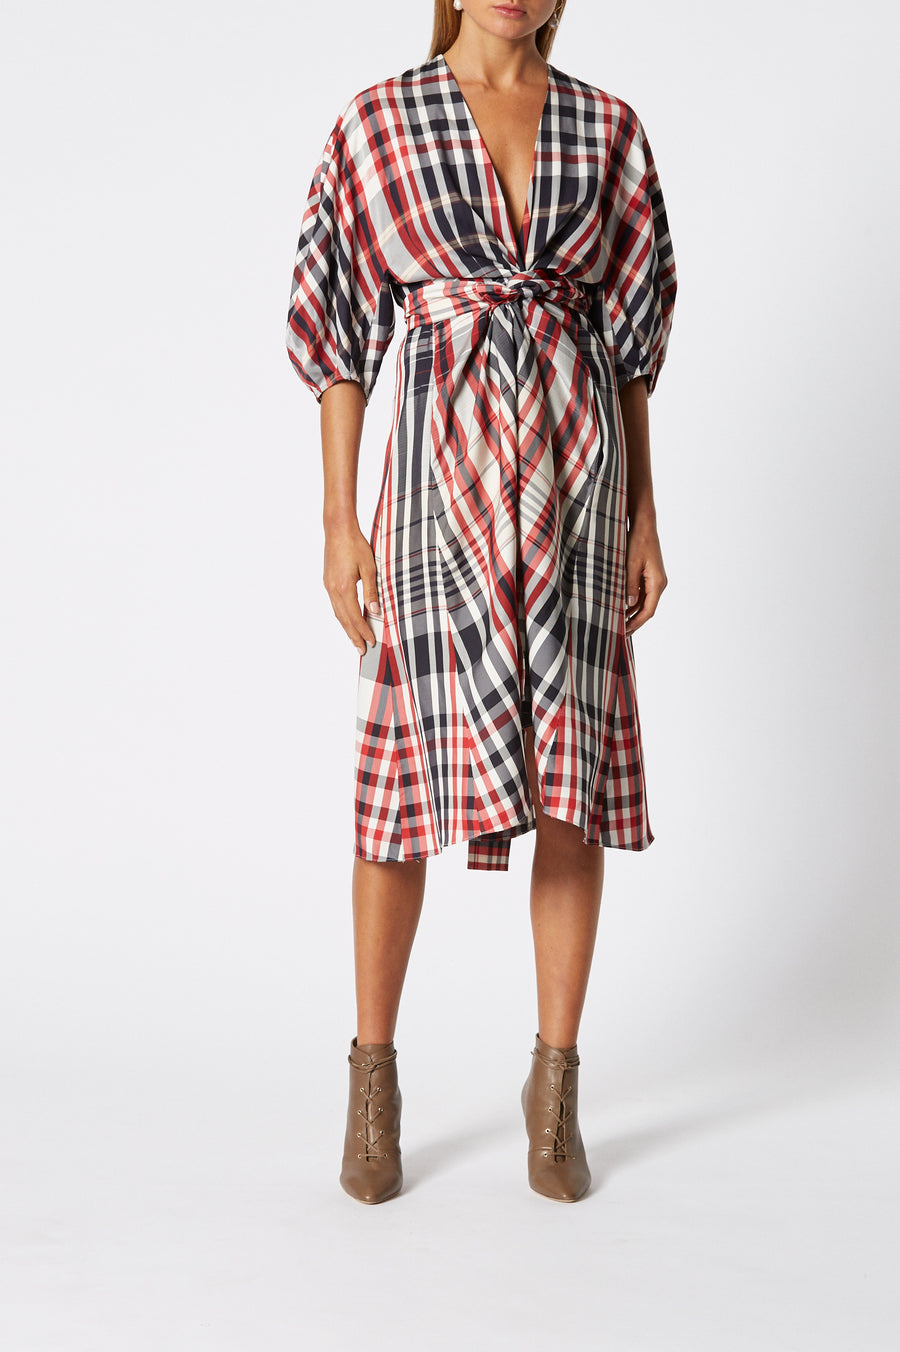 Plaid Cocoon Sleeve Dress, v neck, cocoon sleeves, waist belt, pencil skirt to below the knee, belt in same fabric is included, Color White Red